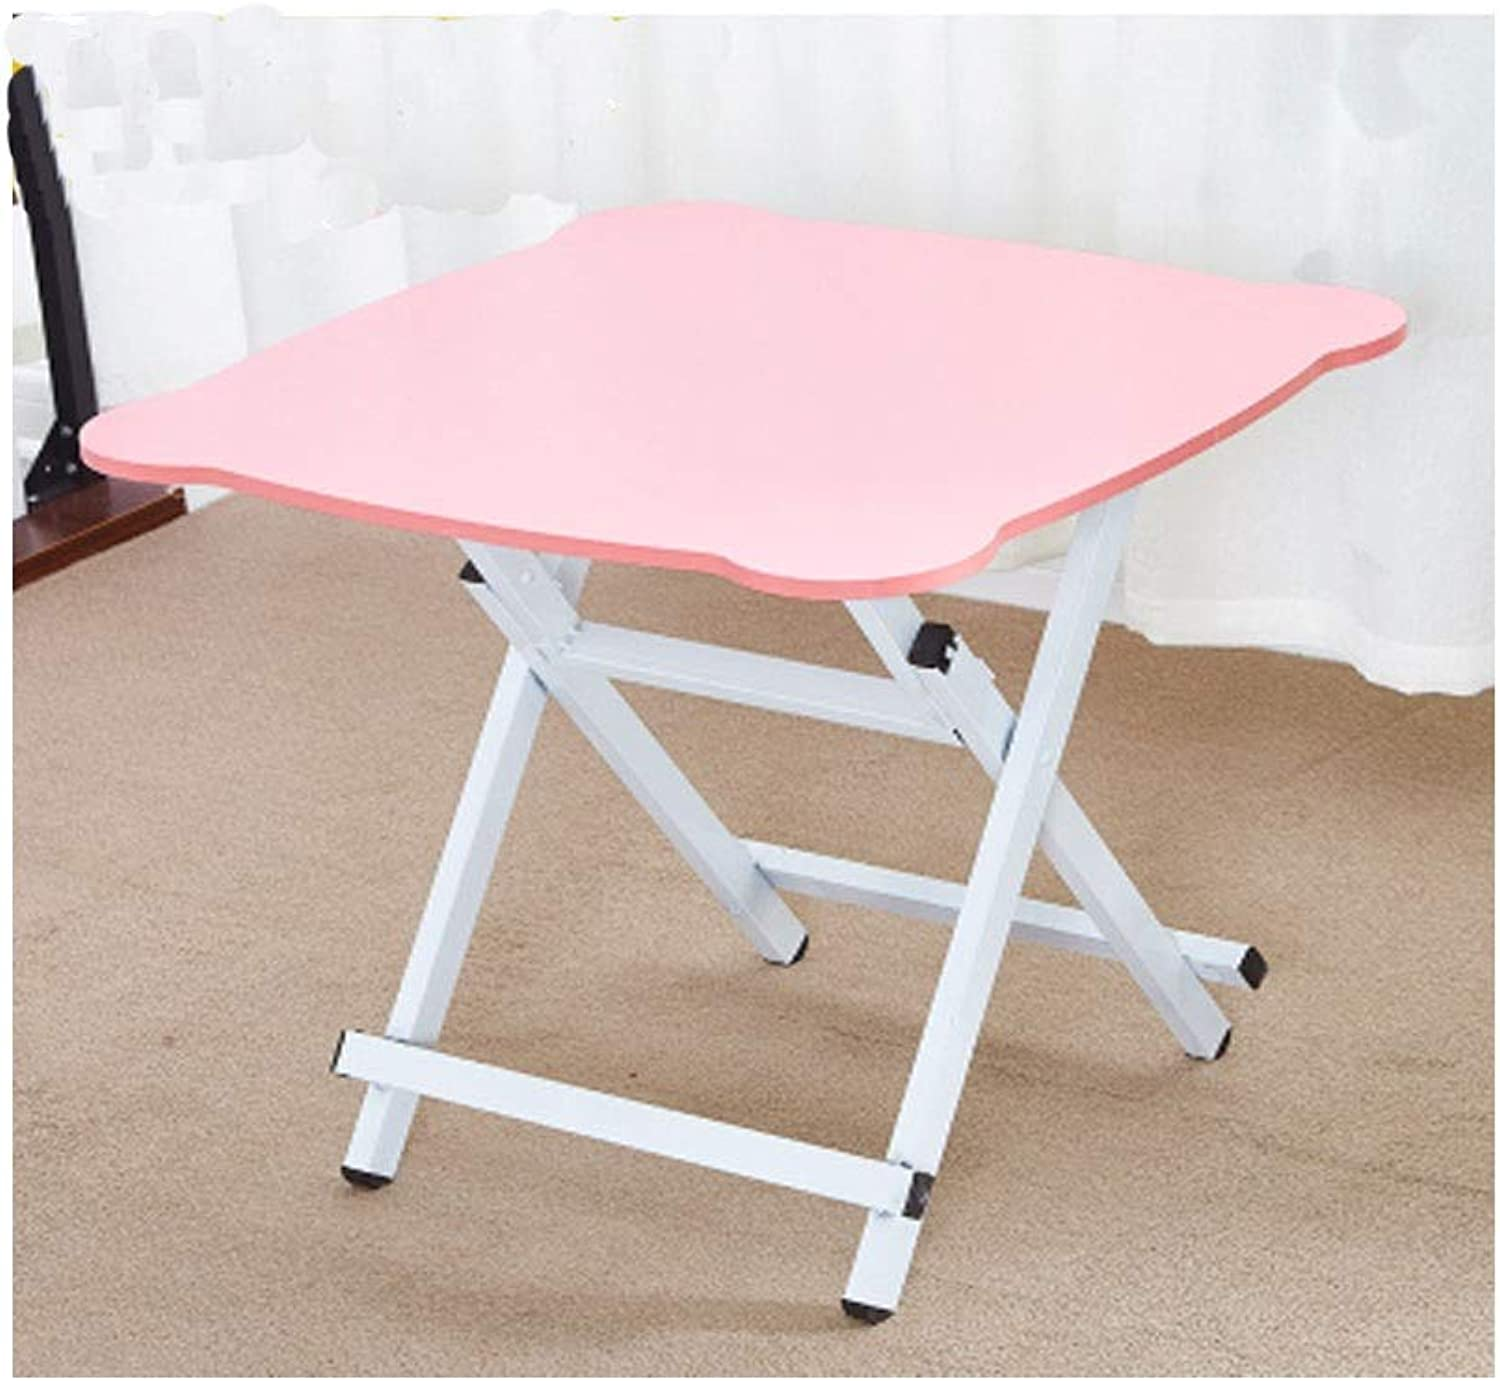 Table and Chairs, Folding Tables and Chairs, Simple Multi-Function Folding Table, Good Material, Practical and Durable (color   Pink, Size   60  60  75cm)